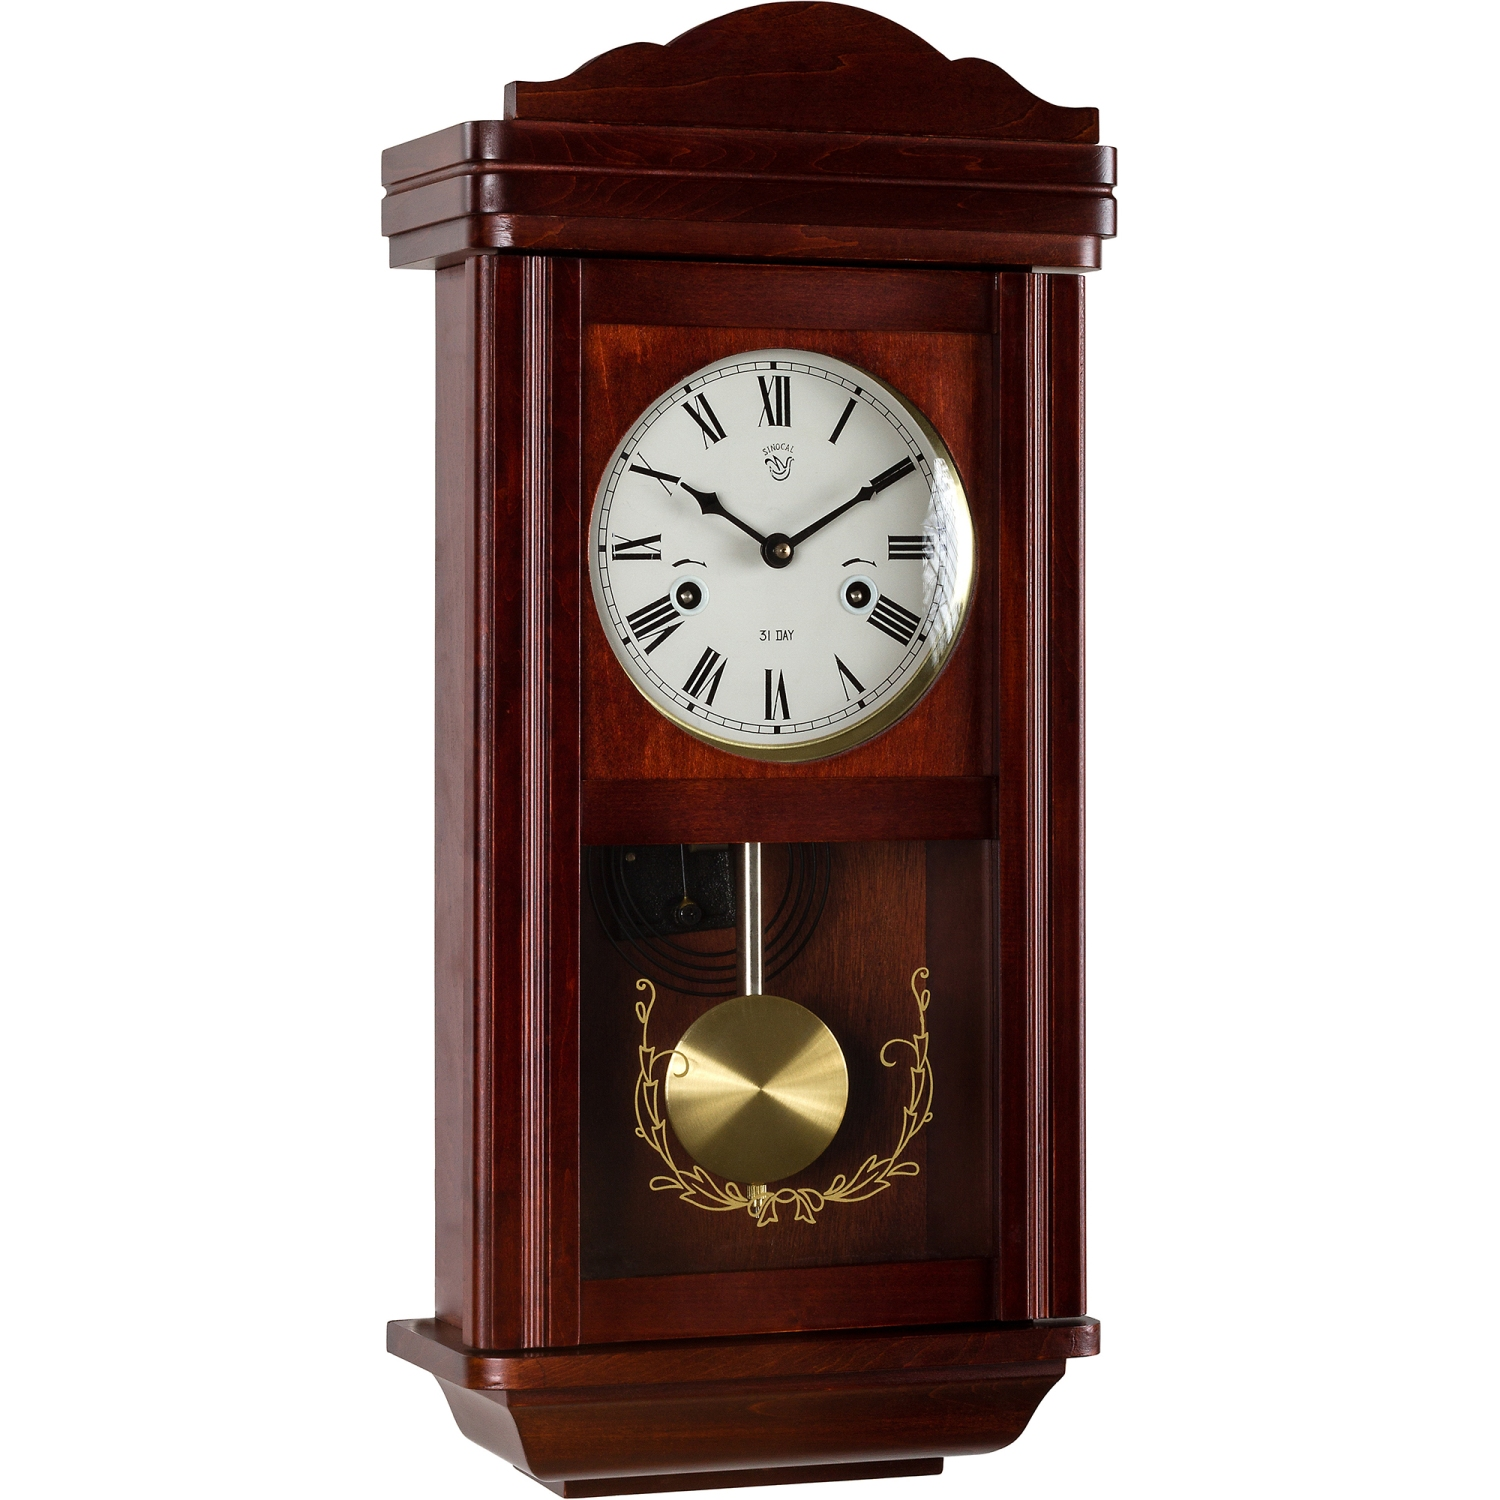 wanduhr pendeluhr uhr regulator im mahagoni stil pendel. Black Bedroom Furniture Sets. Home Design Ideas